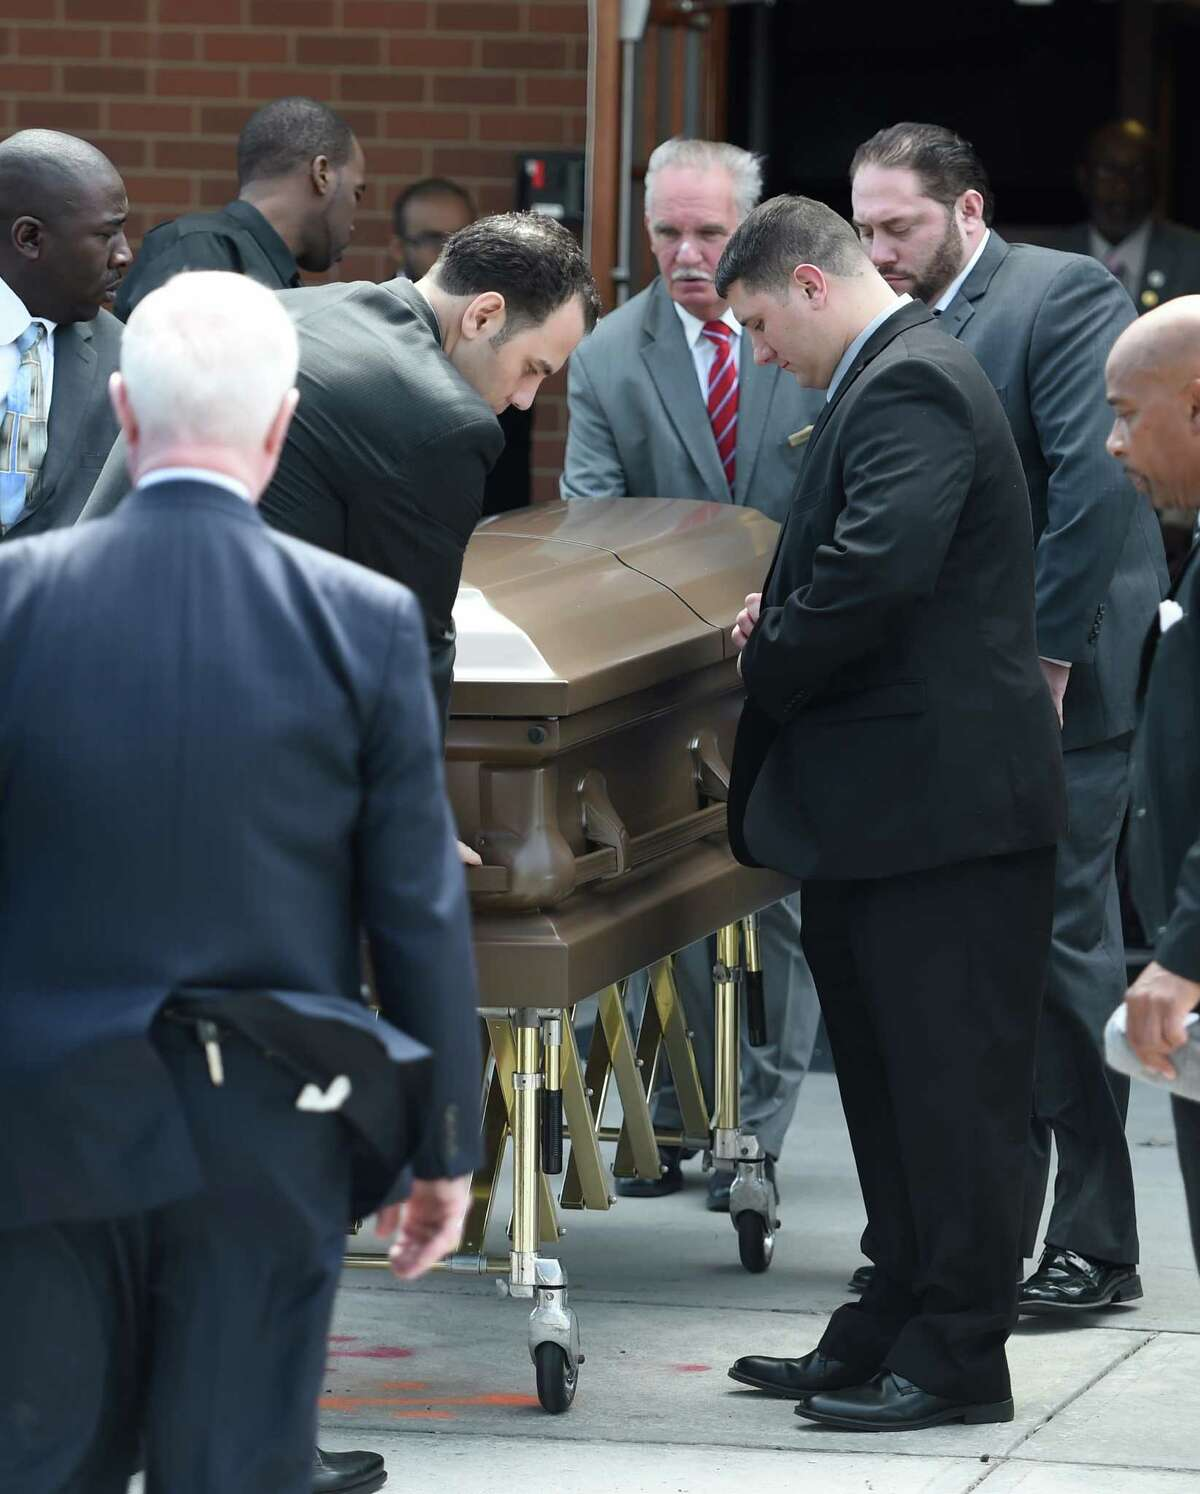 The casket carrying the remains of Donald